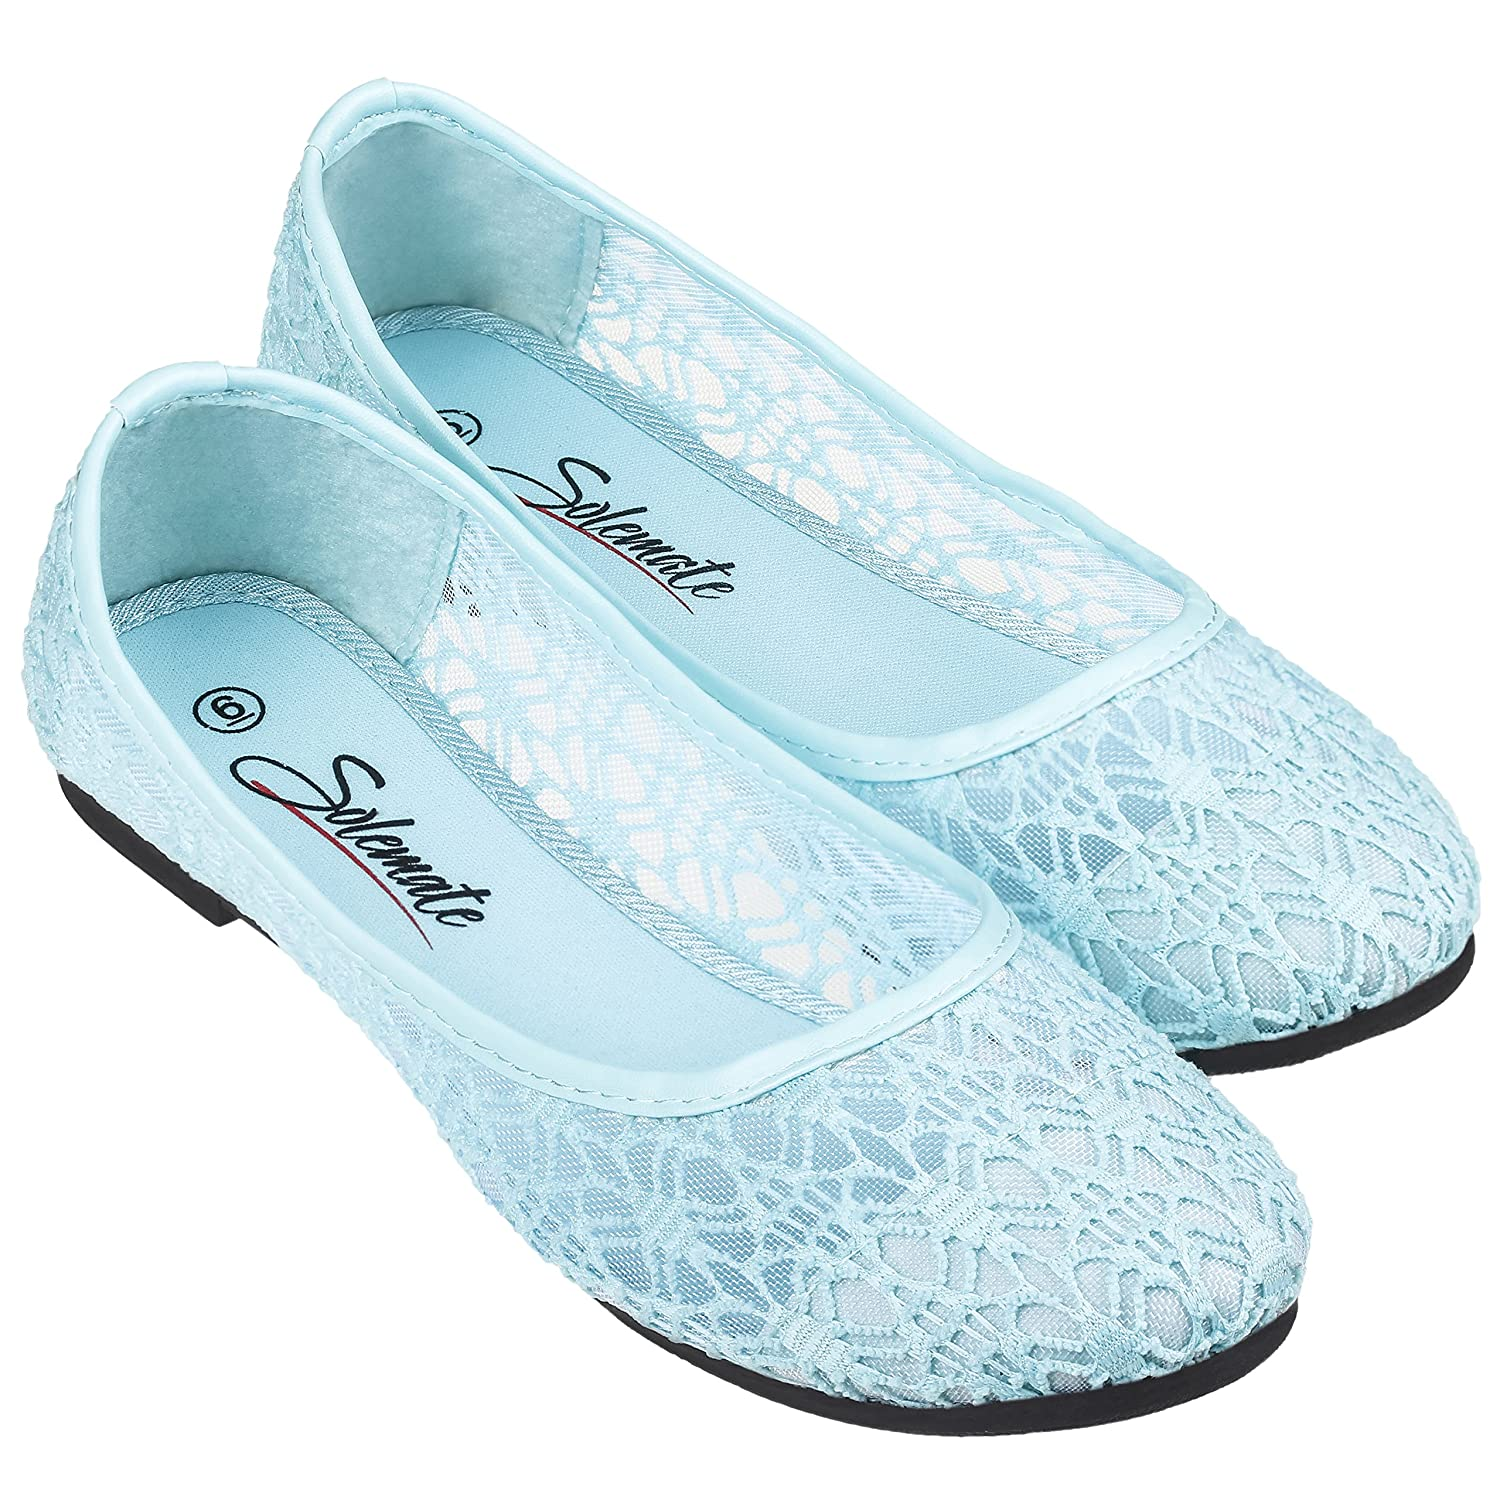 146cd342dd1ab4 Amazon.com | Women's Cute Lace Crochet Ballet Flat Comfy Slip on Loafers Ballerina  Shoes | Flats